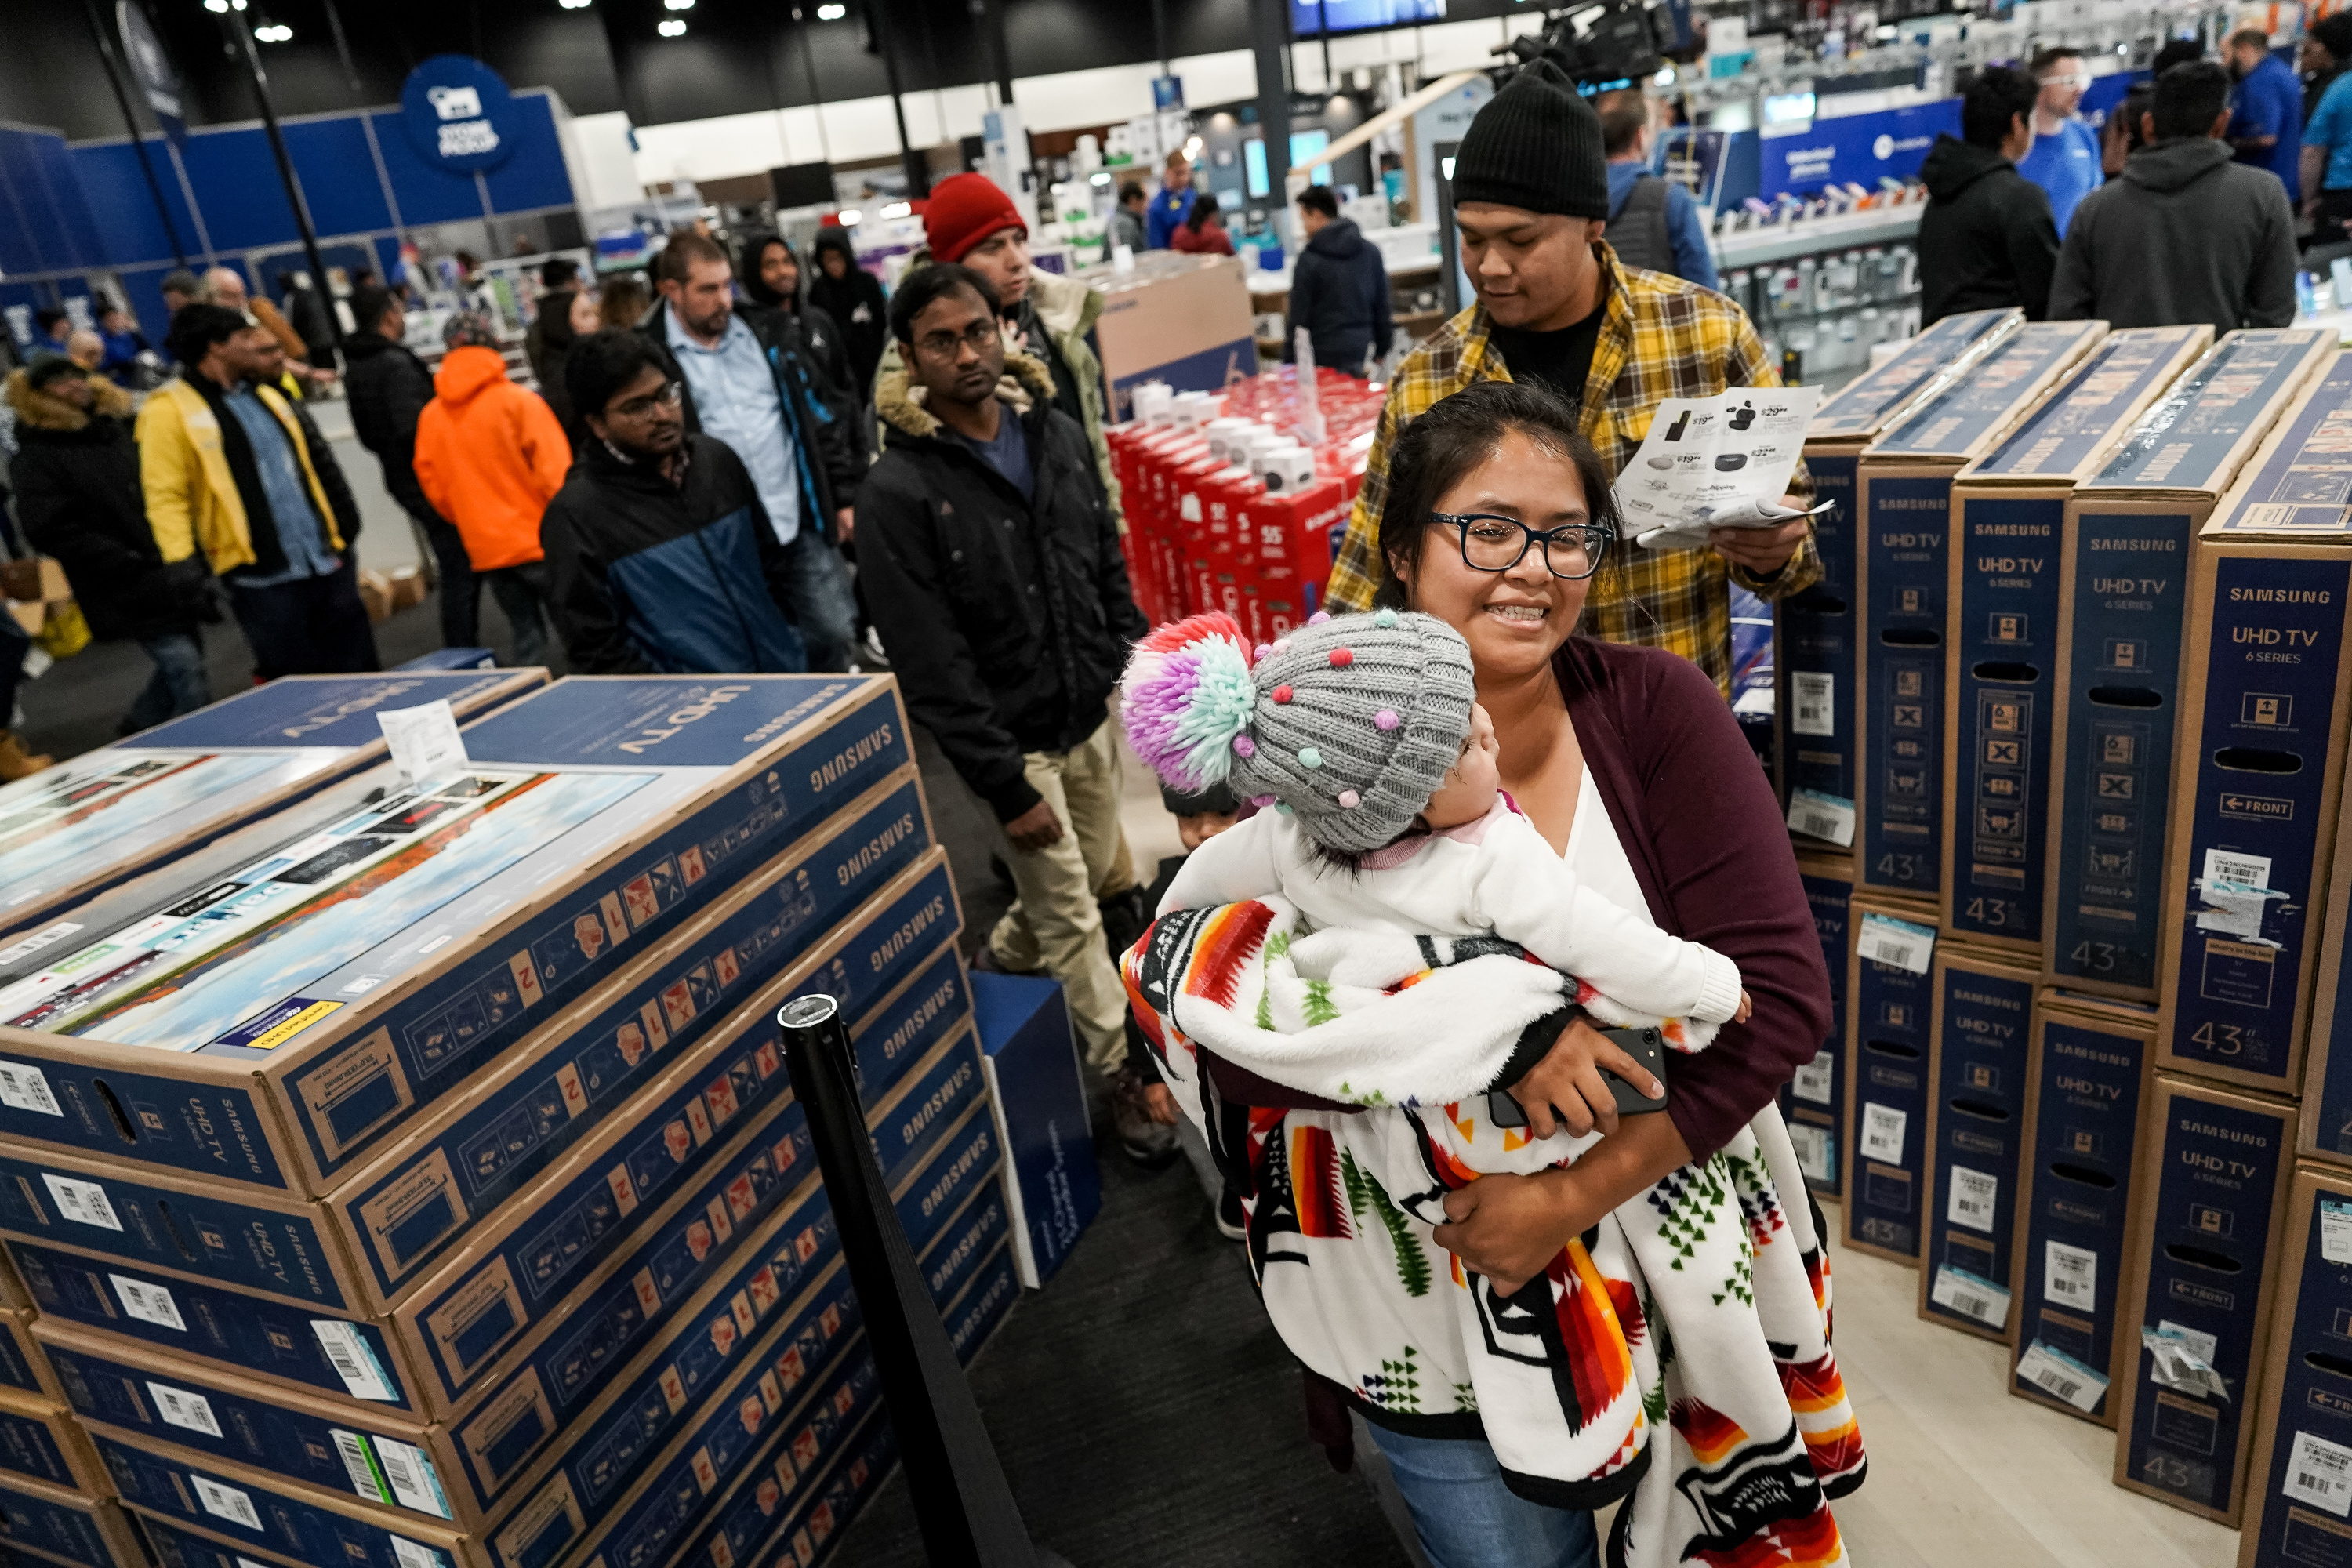 Tara Gishie carries her daughter, Lerayah, 7 months, as while Lemanuel, back right, and Calum, 4, follow behind during Black Friday shopping at Best Buy in Salt Lake City on Thanksgiving Day, Thursday, Nov. 28, 2019.